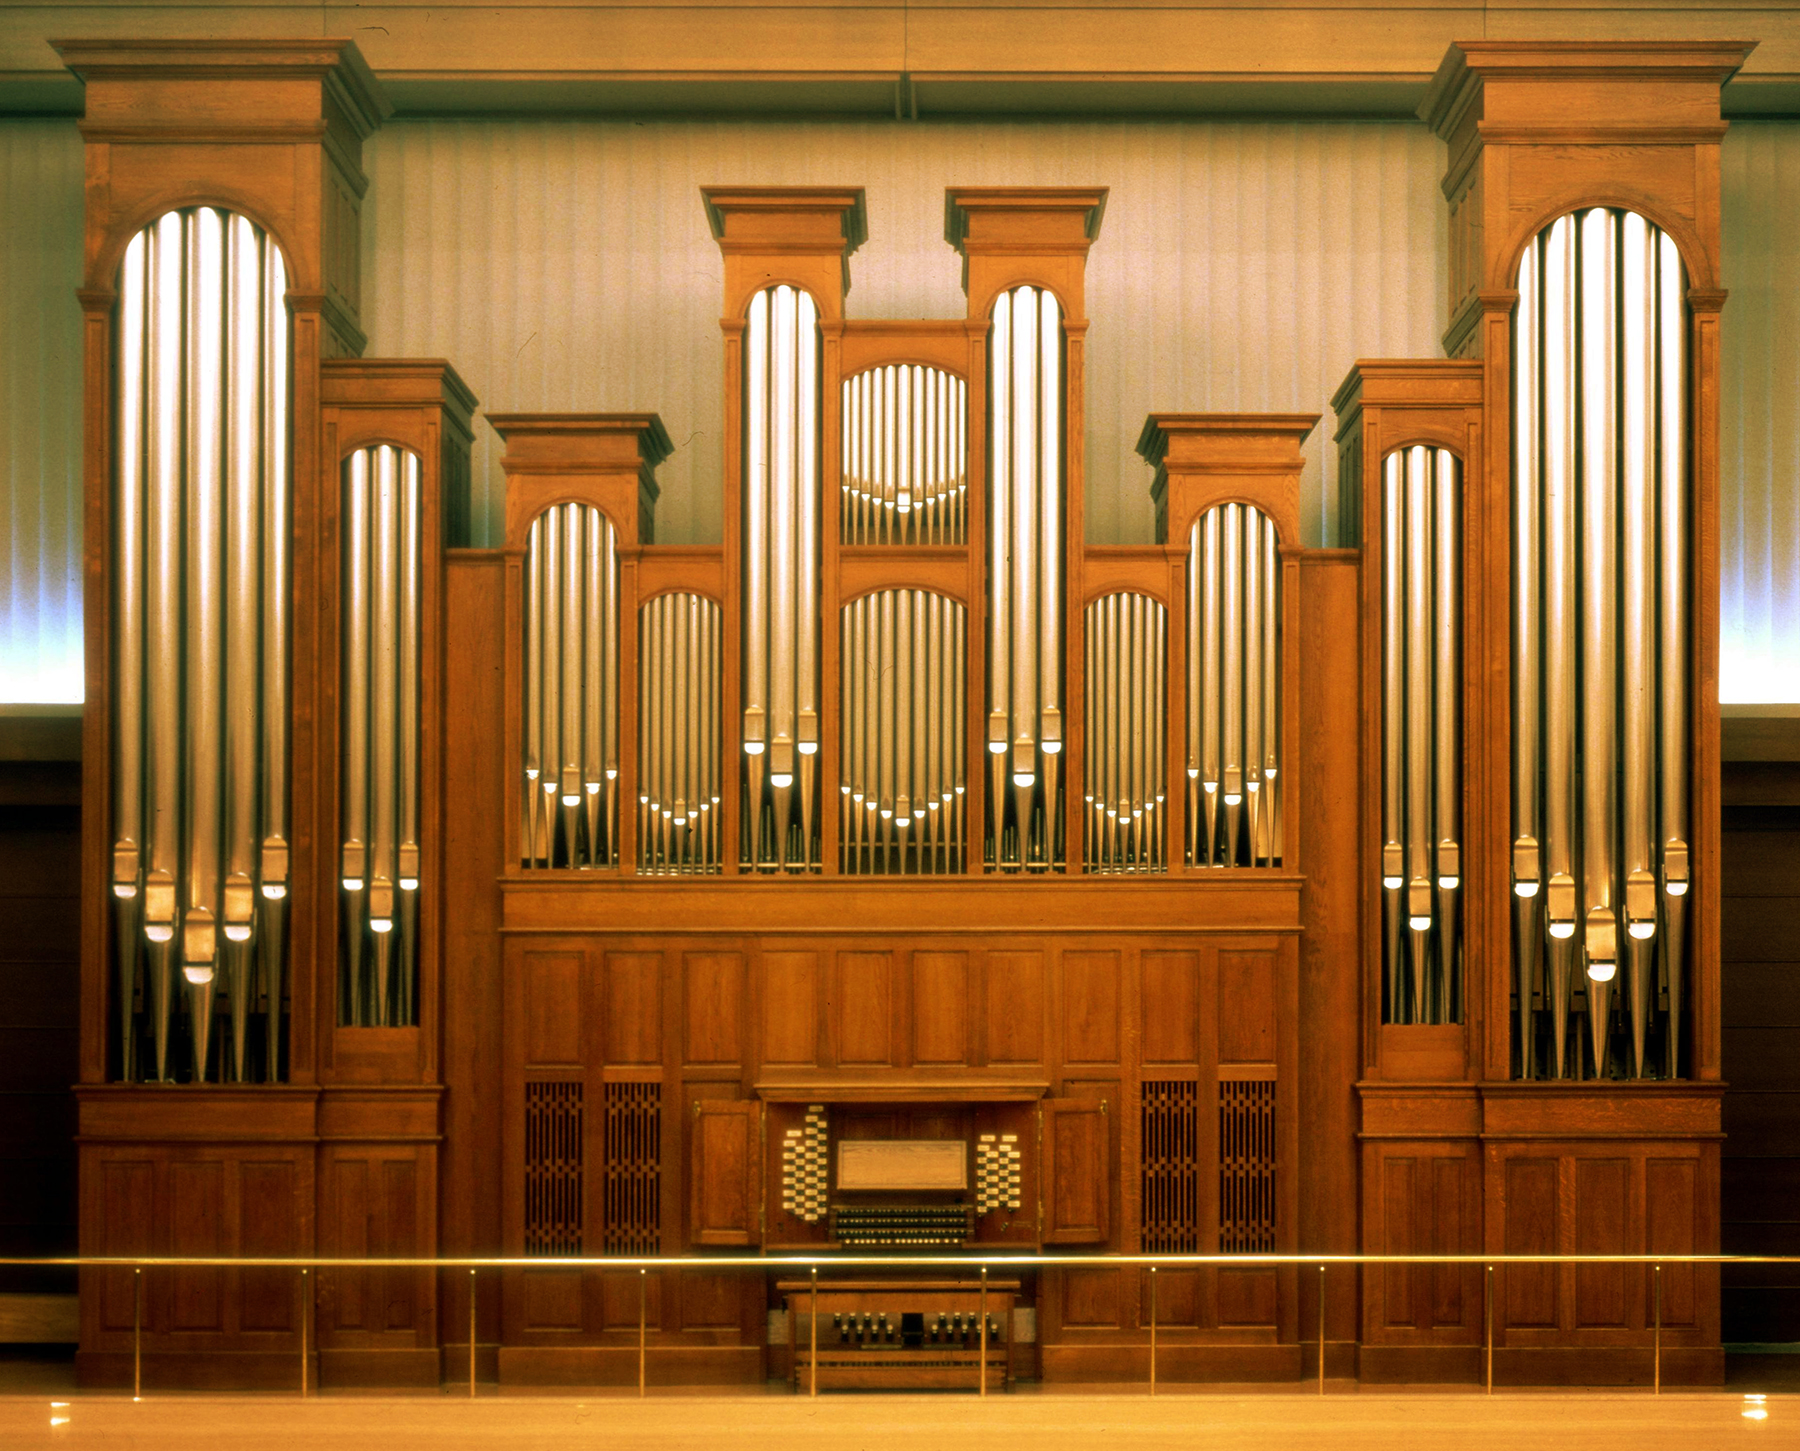 Names of the parts of a pipe organ